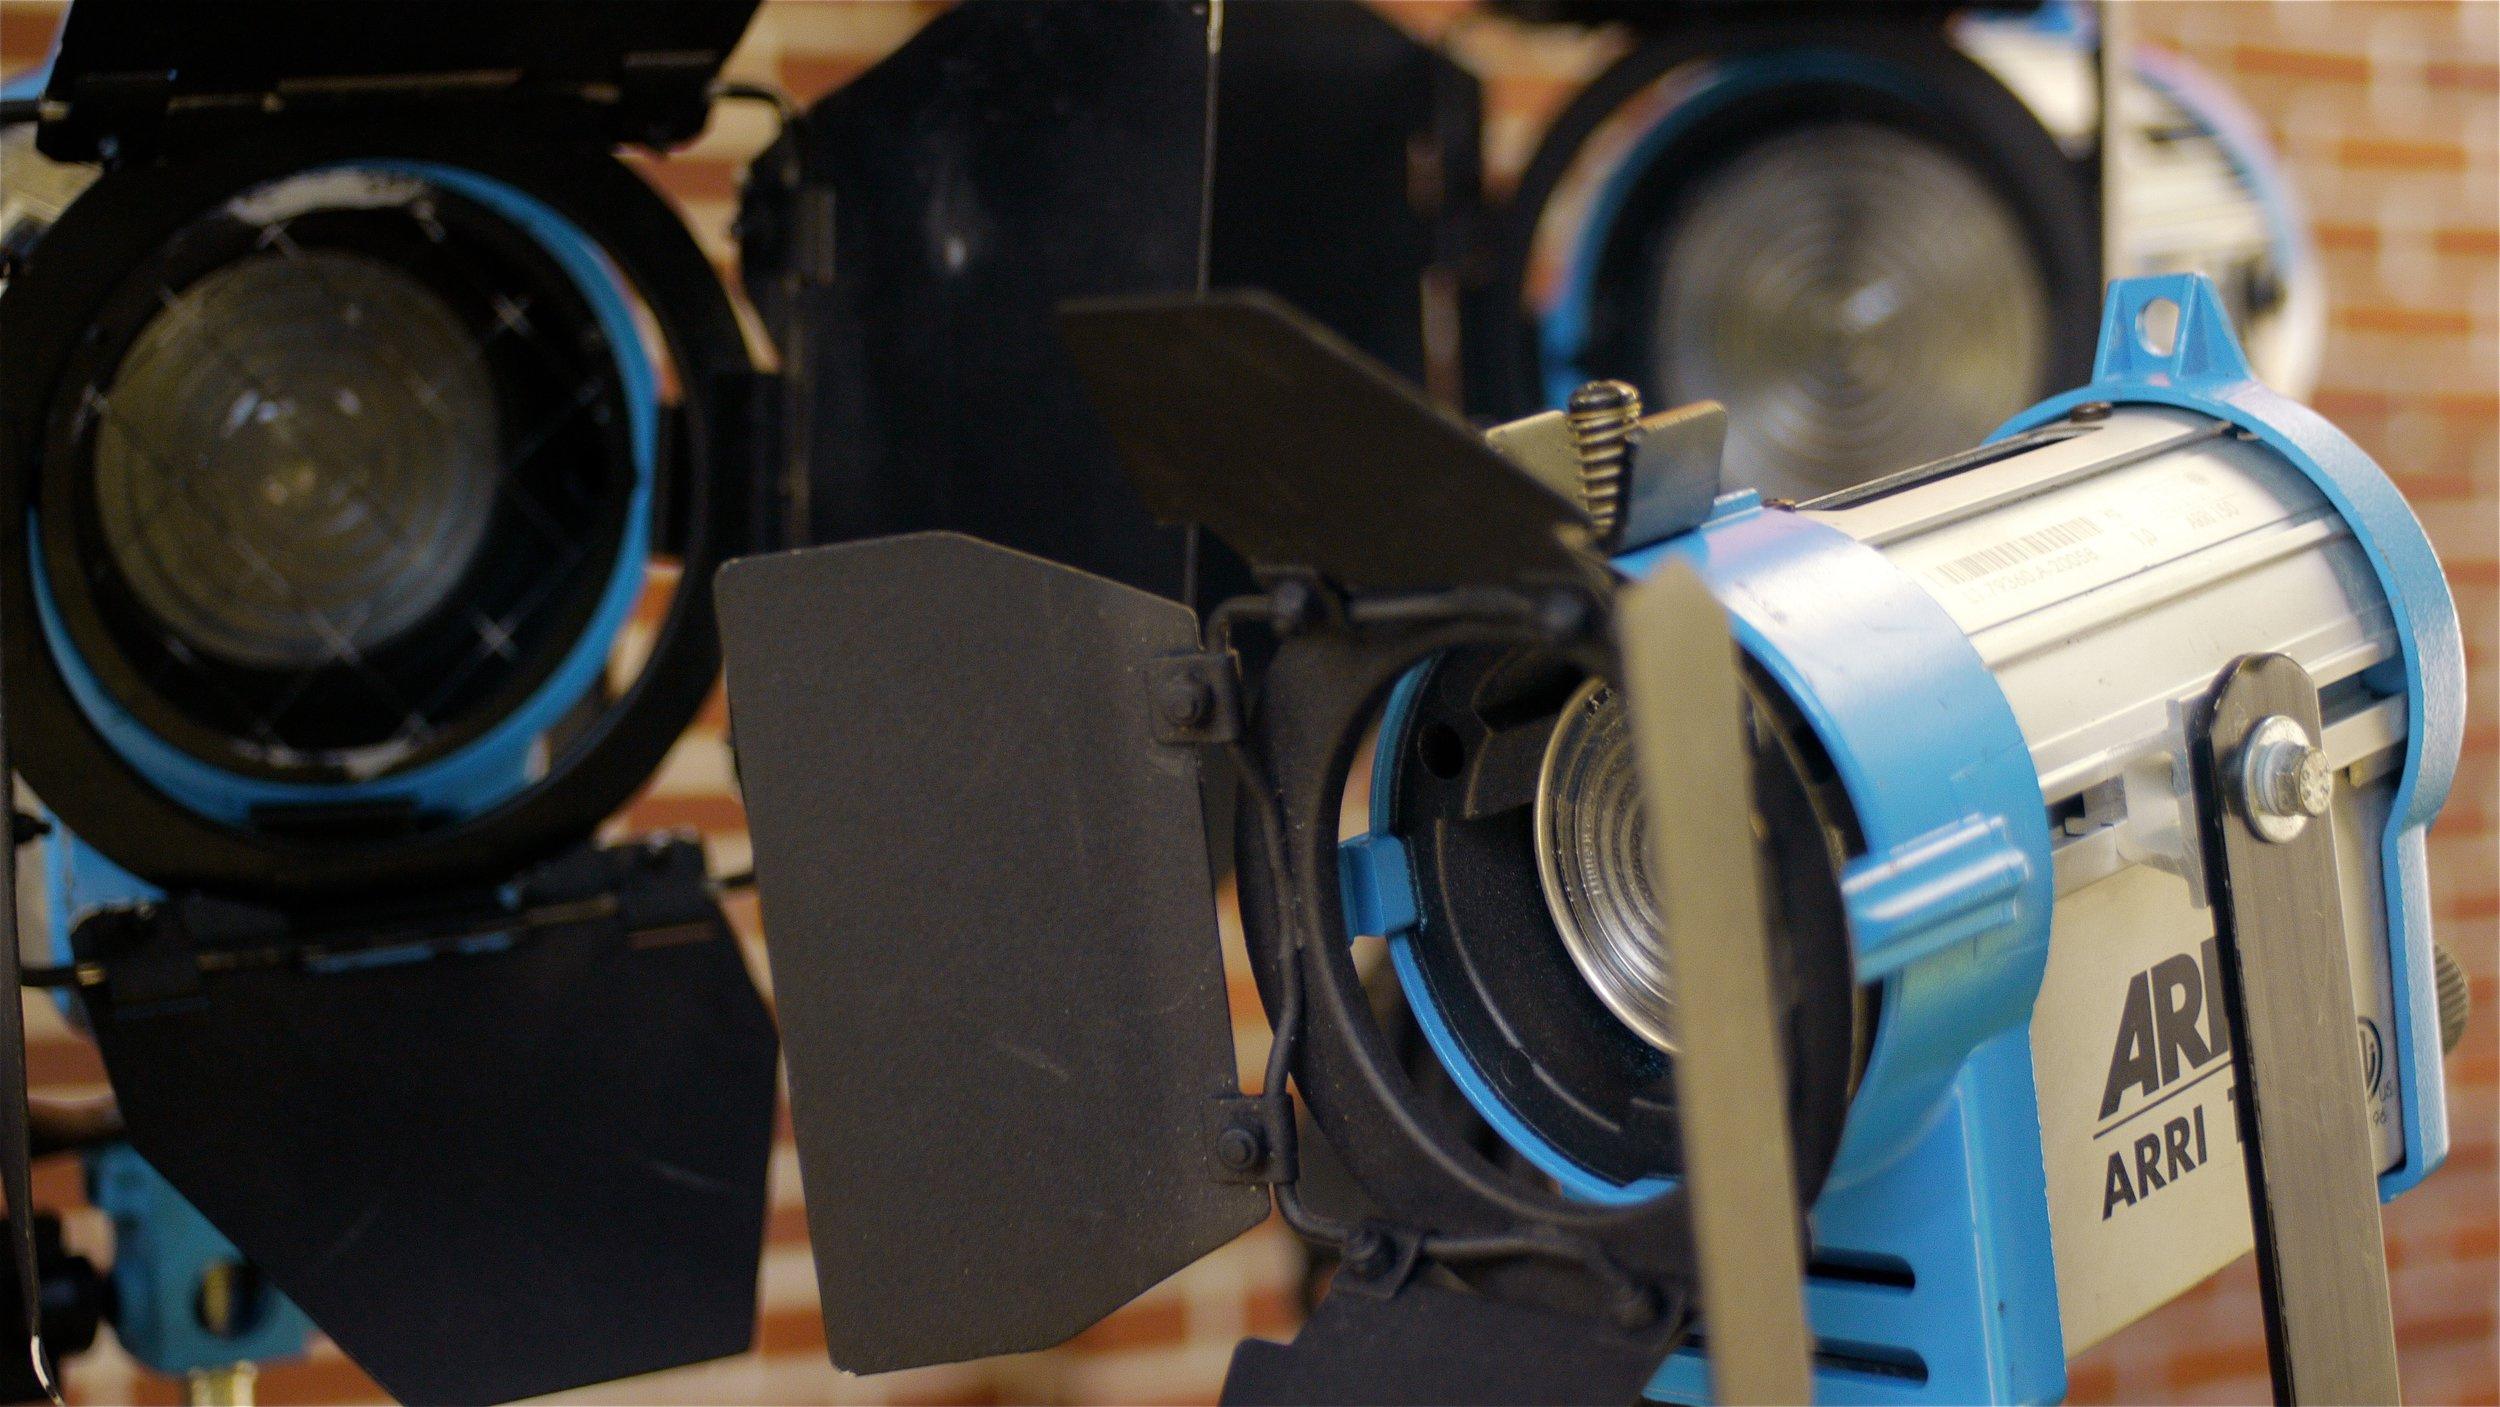 Arri fresnel lighting provides a great amount of control on the set.